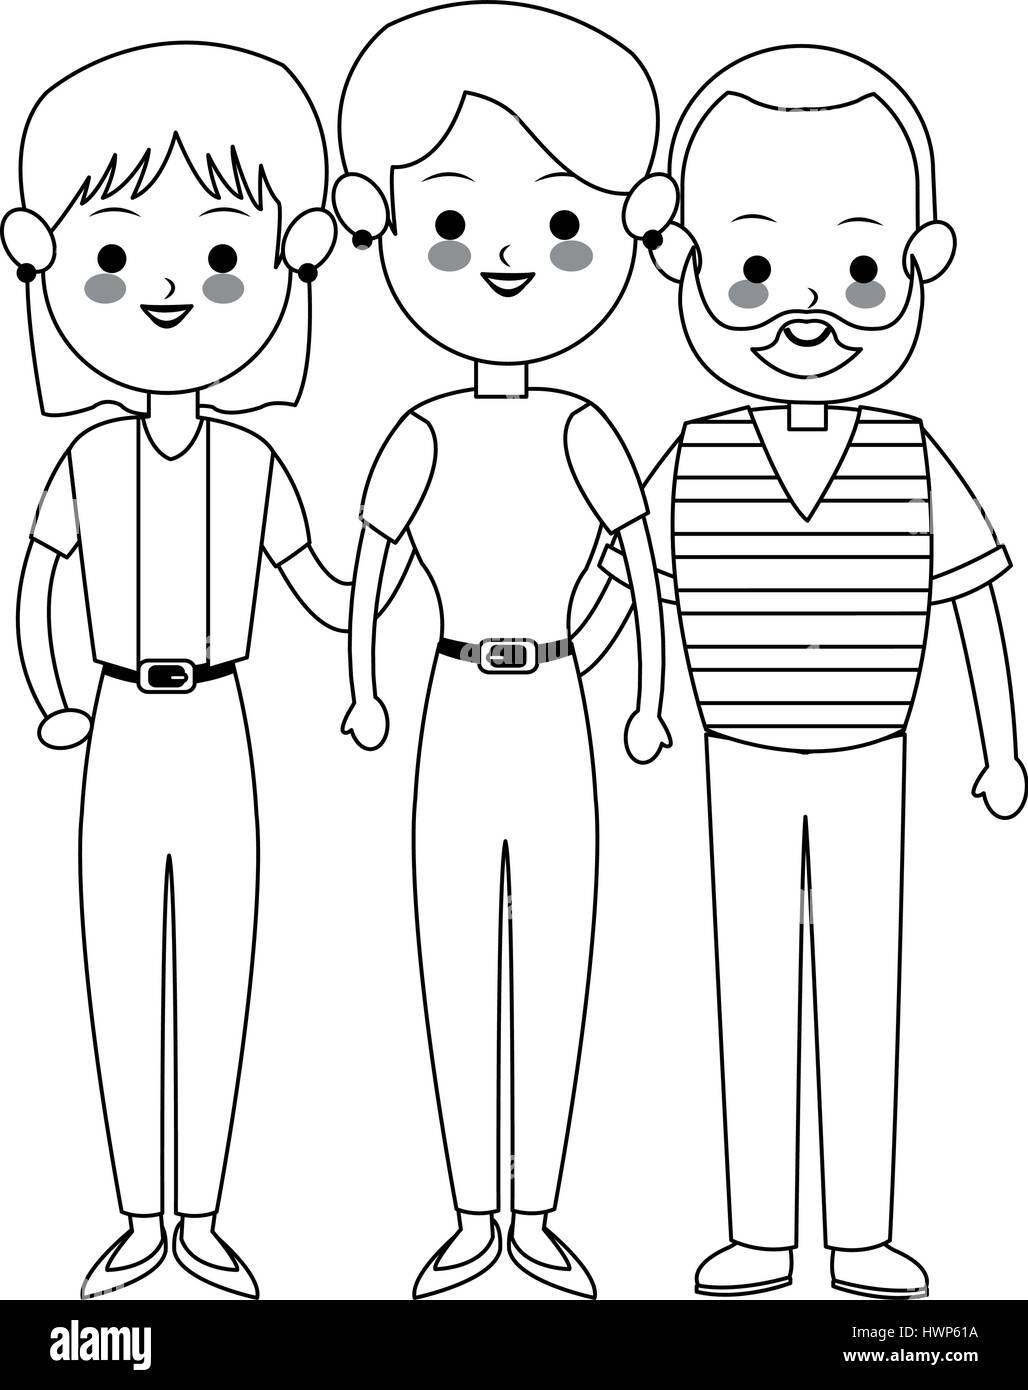 three family members cute cartoon icon image  - Stock Vector